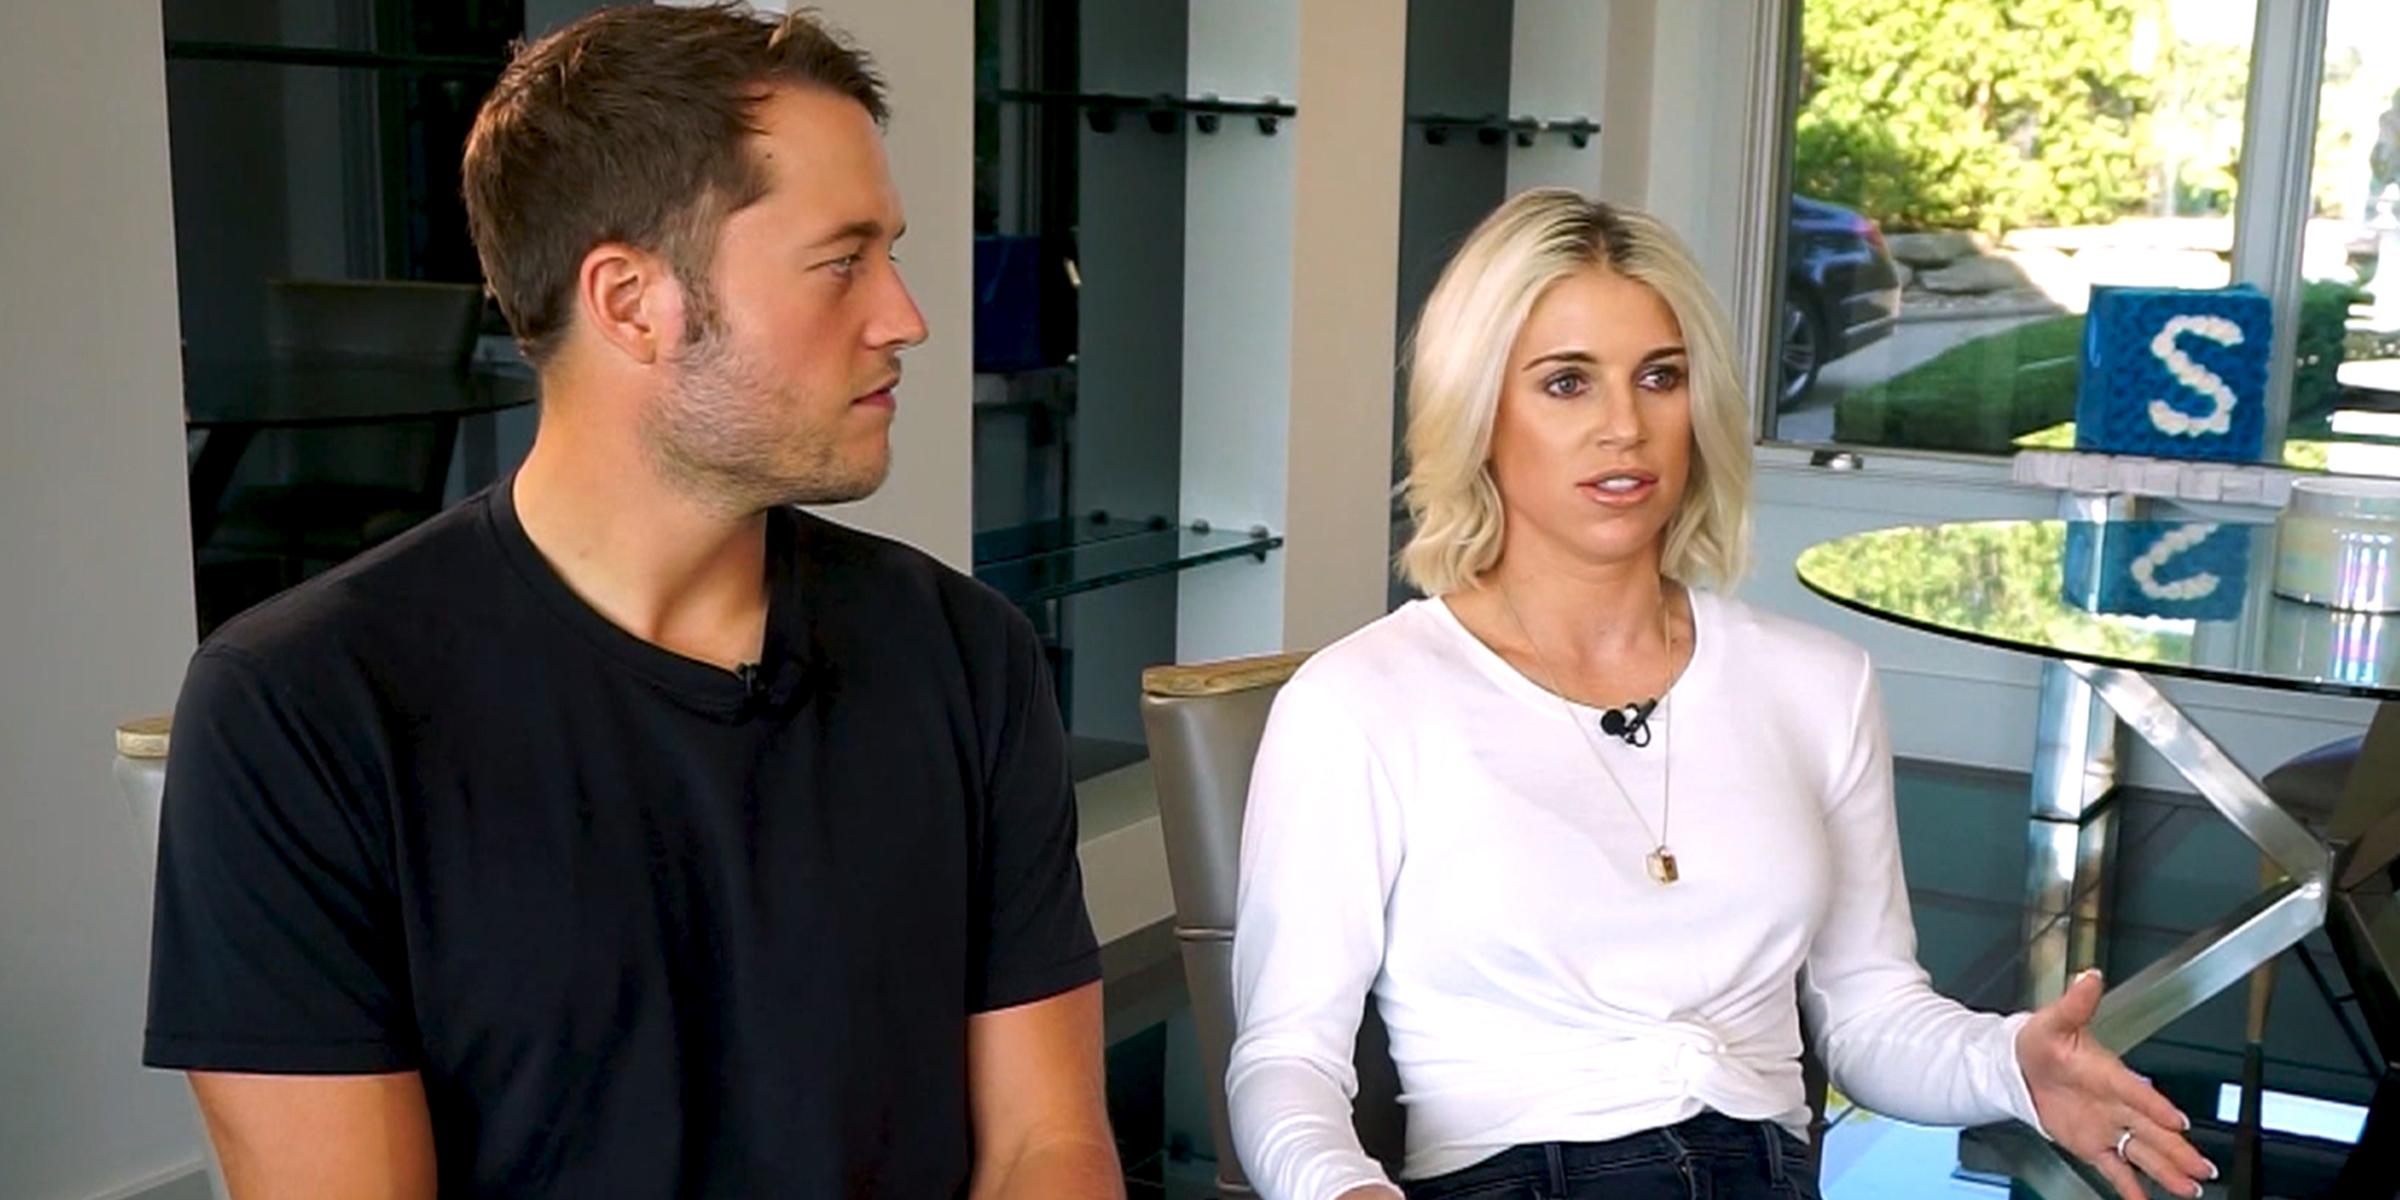 Kelly Stafford Wife Of Nfl Star Matthew Stafford Opens Up About Brain Tumor Recovery